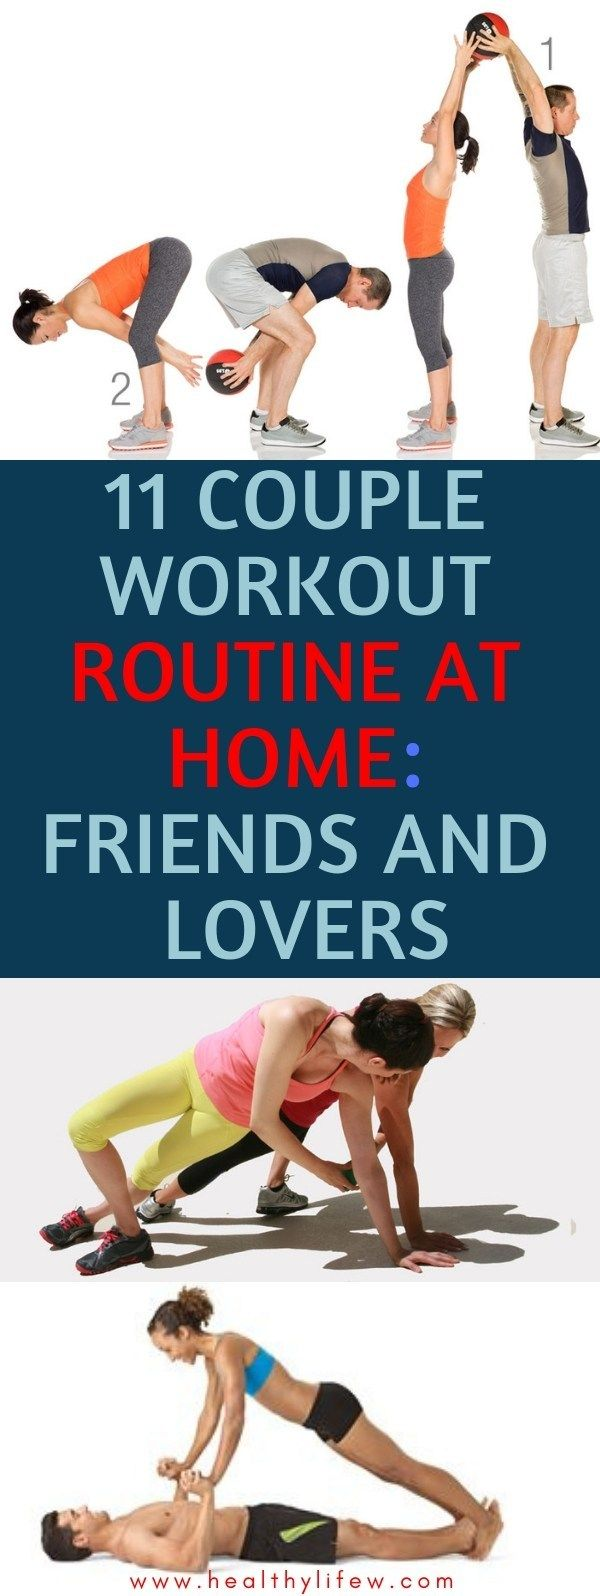 11 couple workout routine at home: friends, partners and lovers